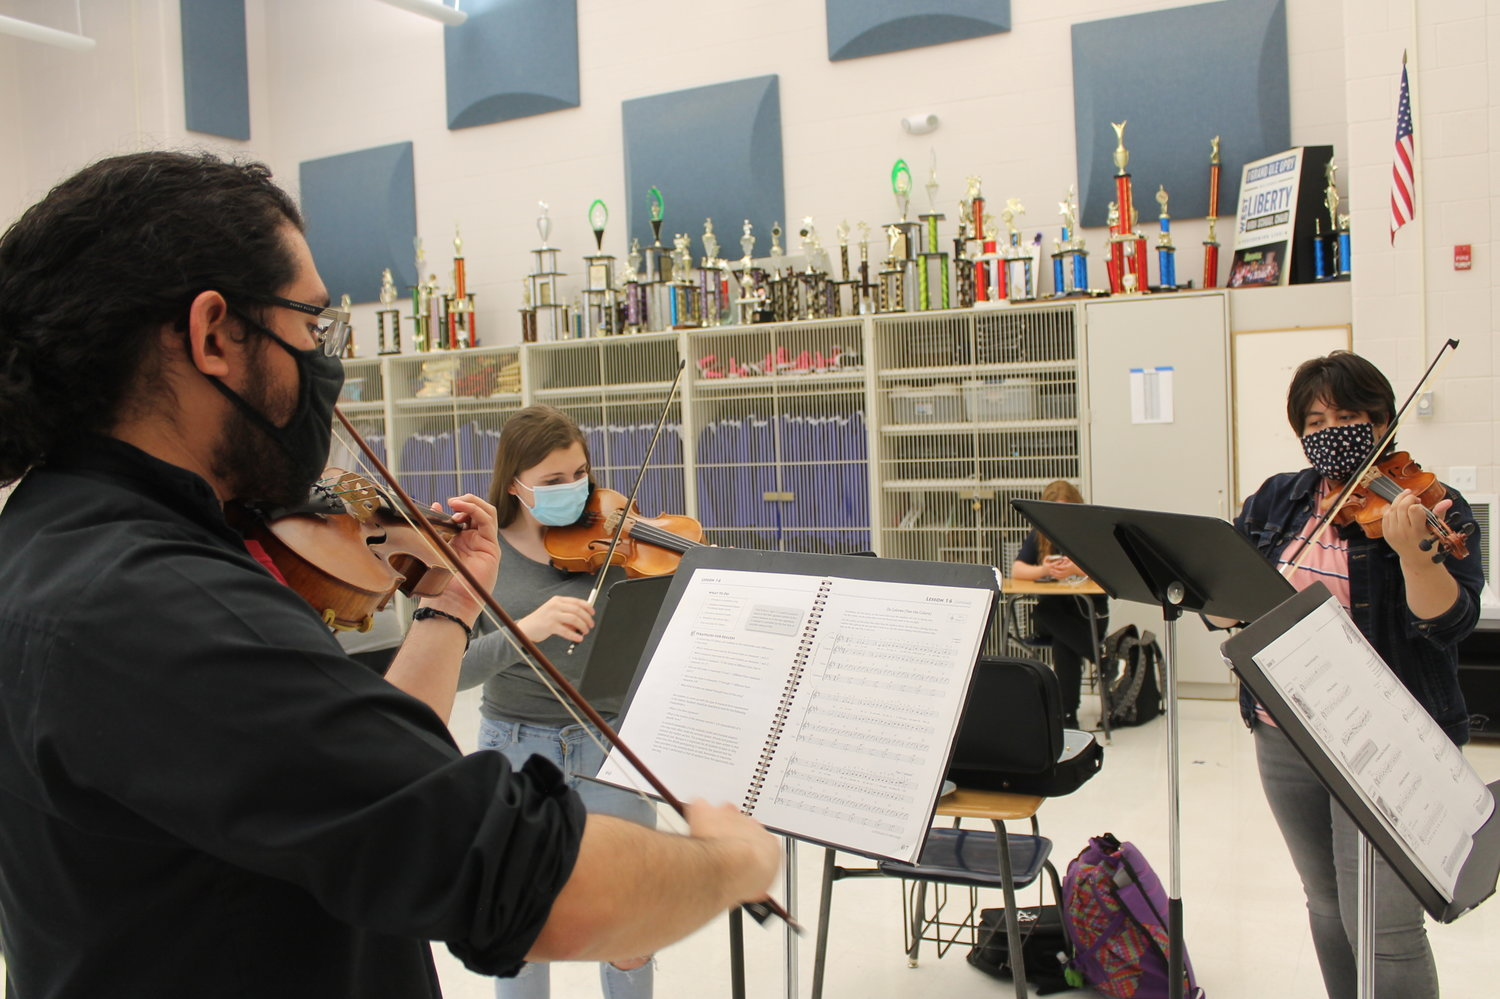 Guillermo Najarro, instructor, works with sophomores Beatric Goldberry and Ashley Barahona